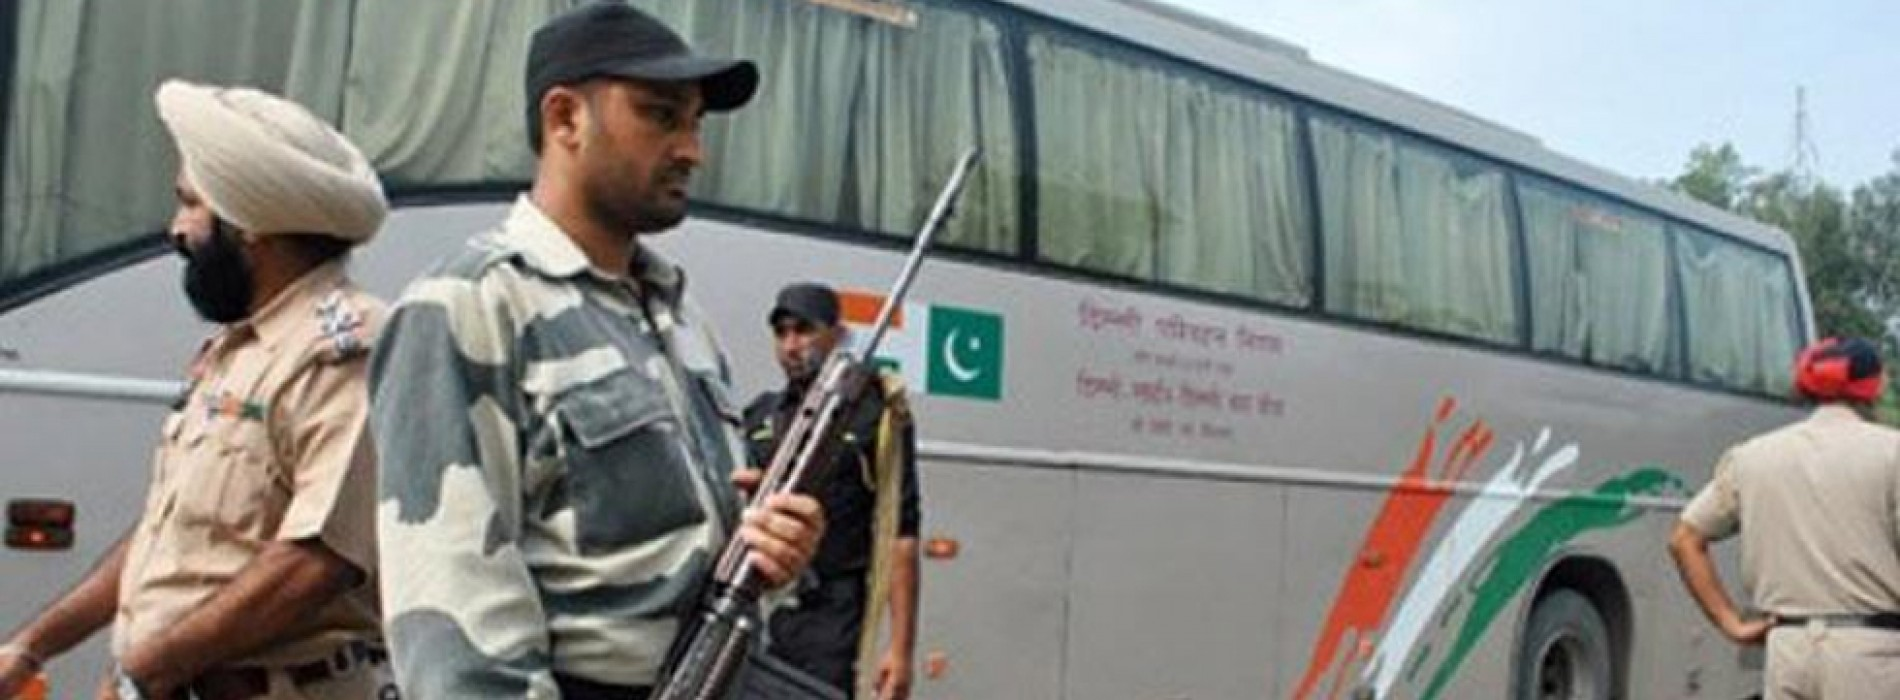 Bus and rail links between India and Pakistan are placed on high alert after intelligence warns terrorists could target Republic Day celebrations